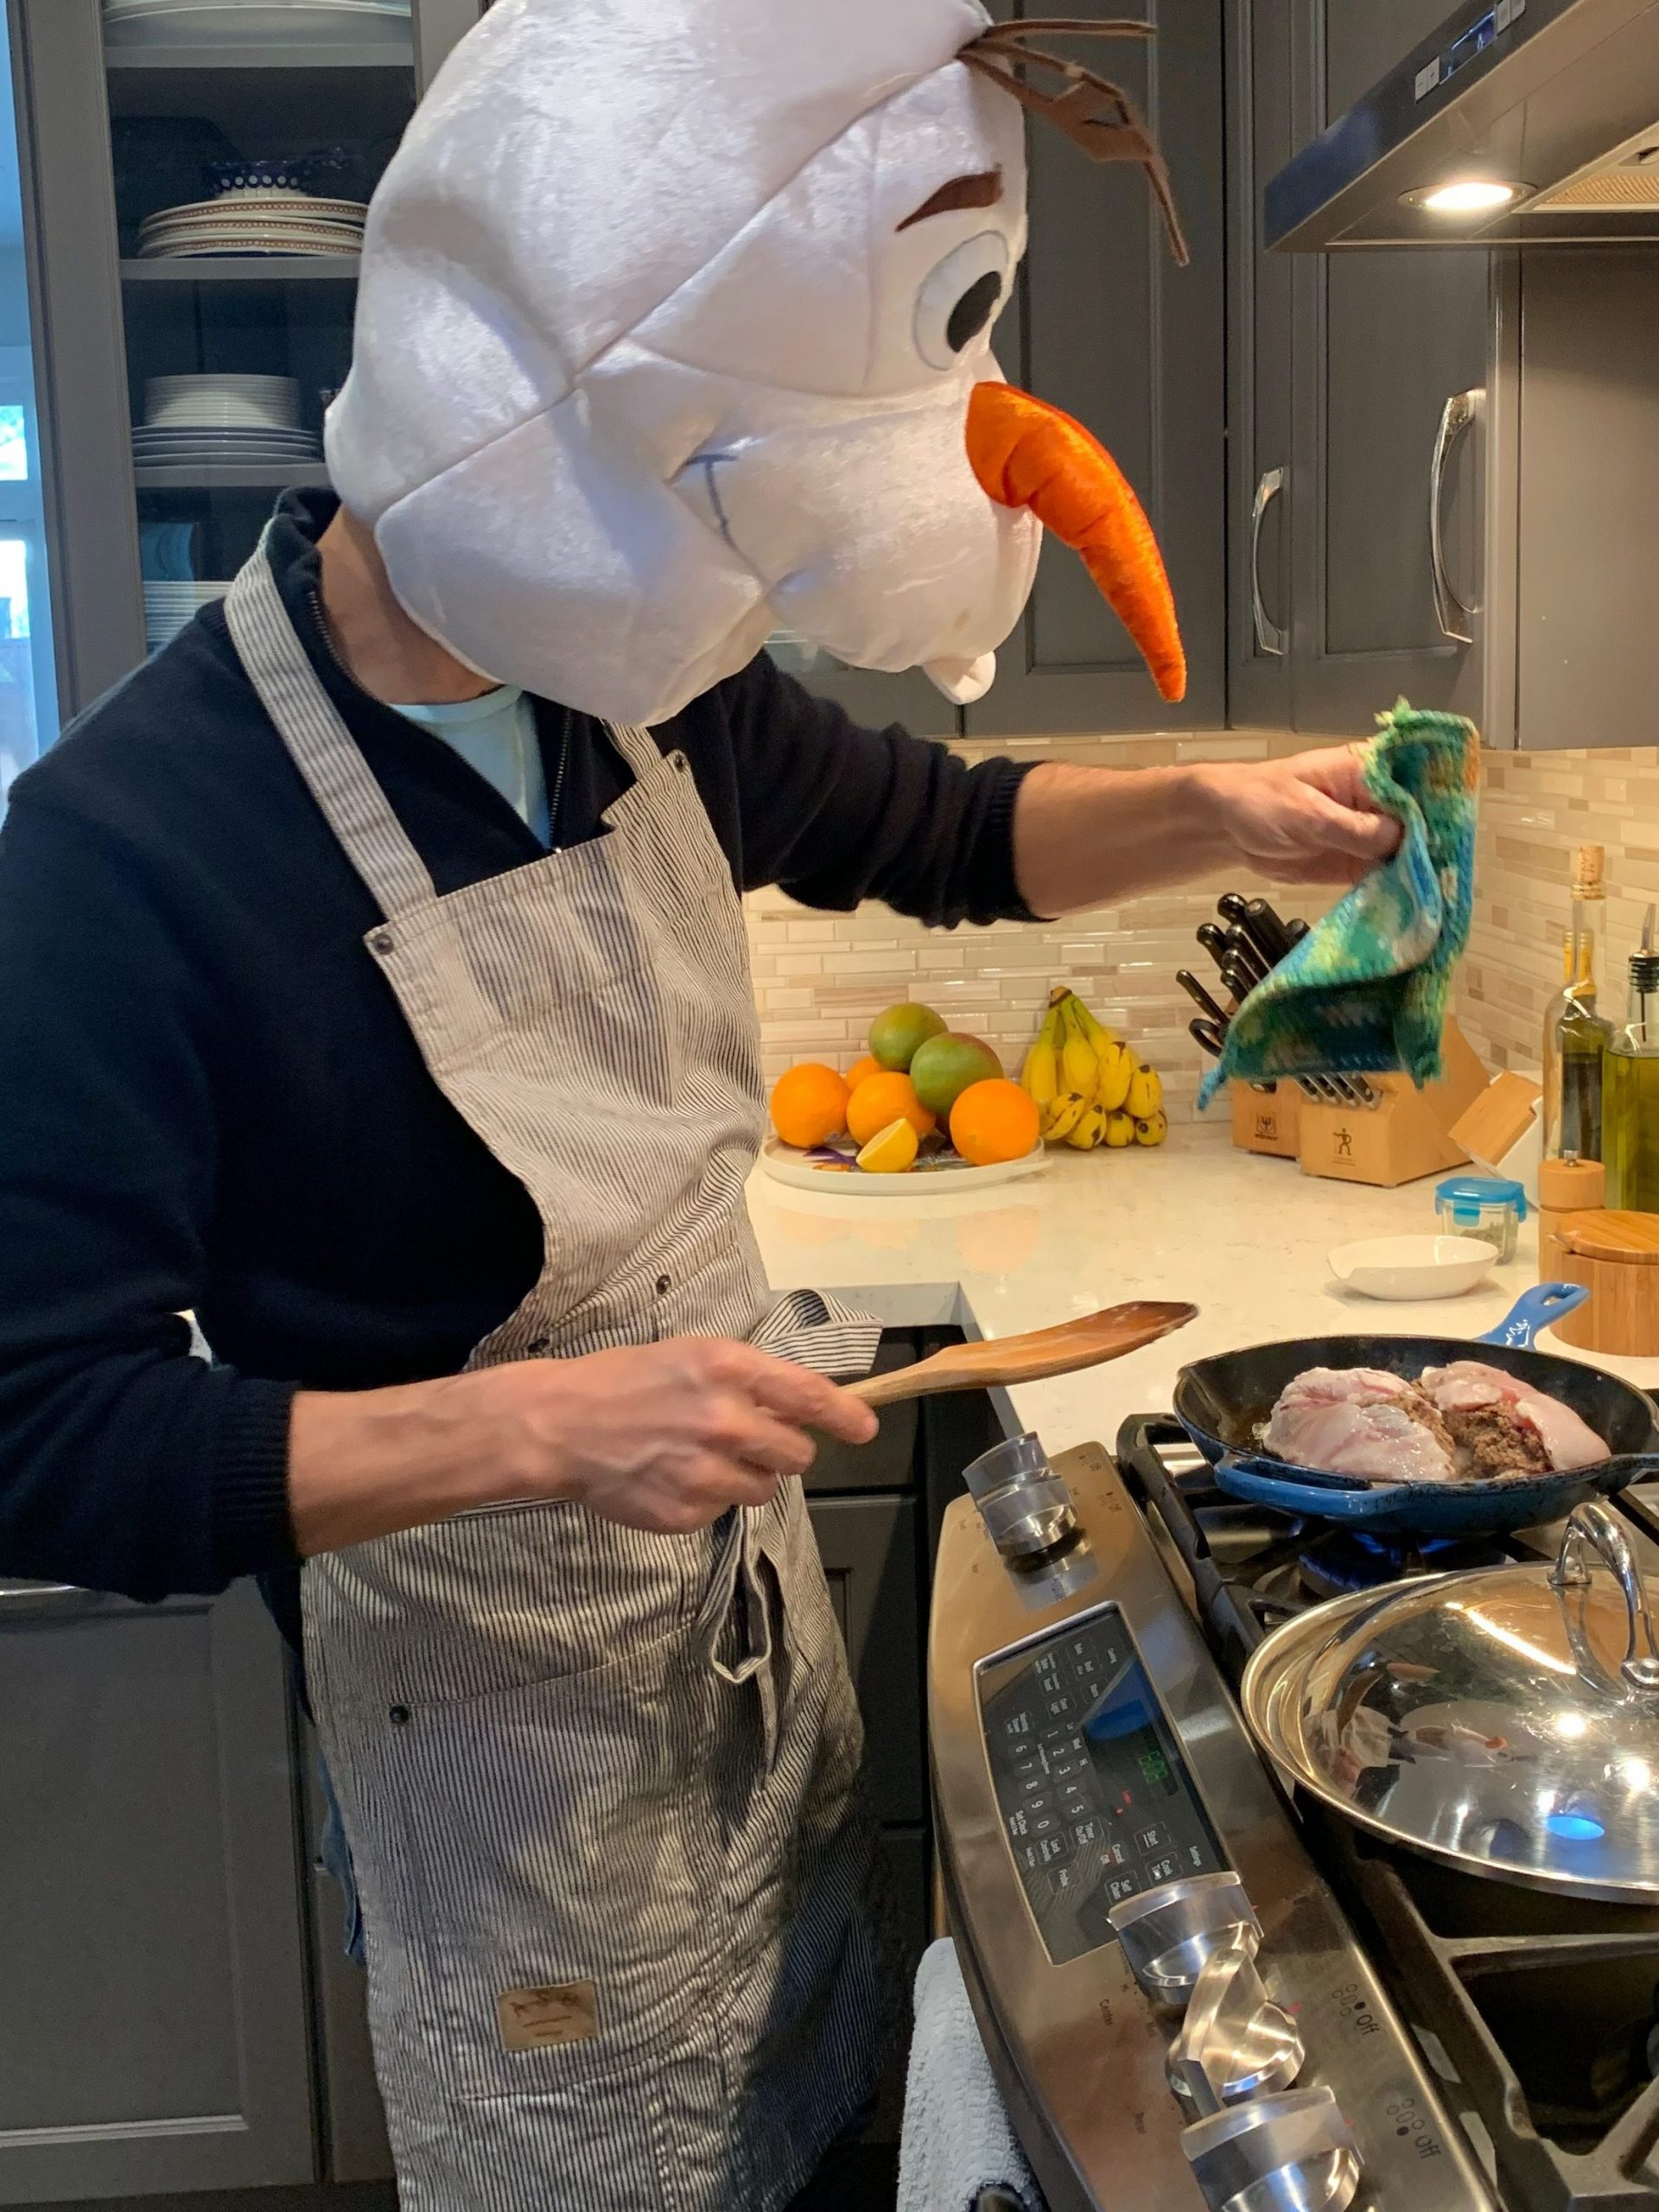 Cooking in California, 2020